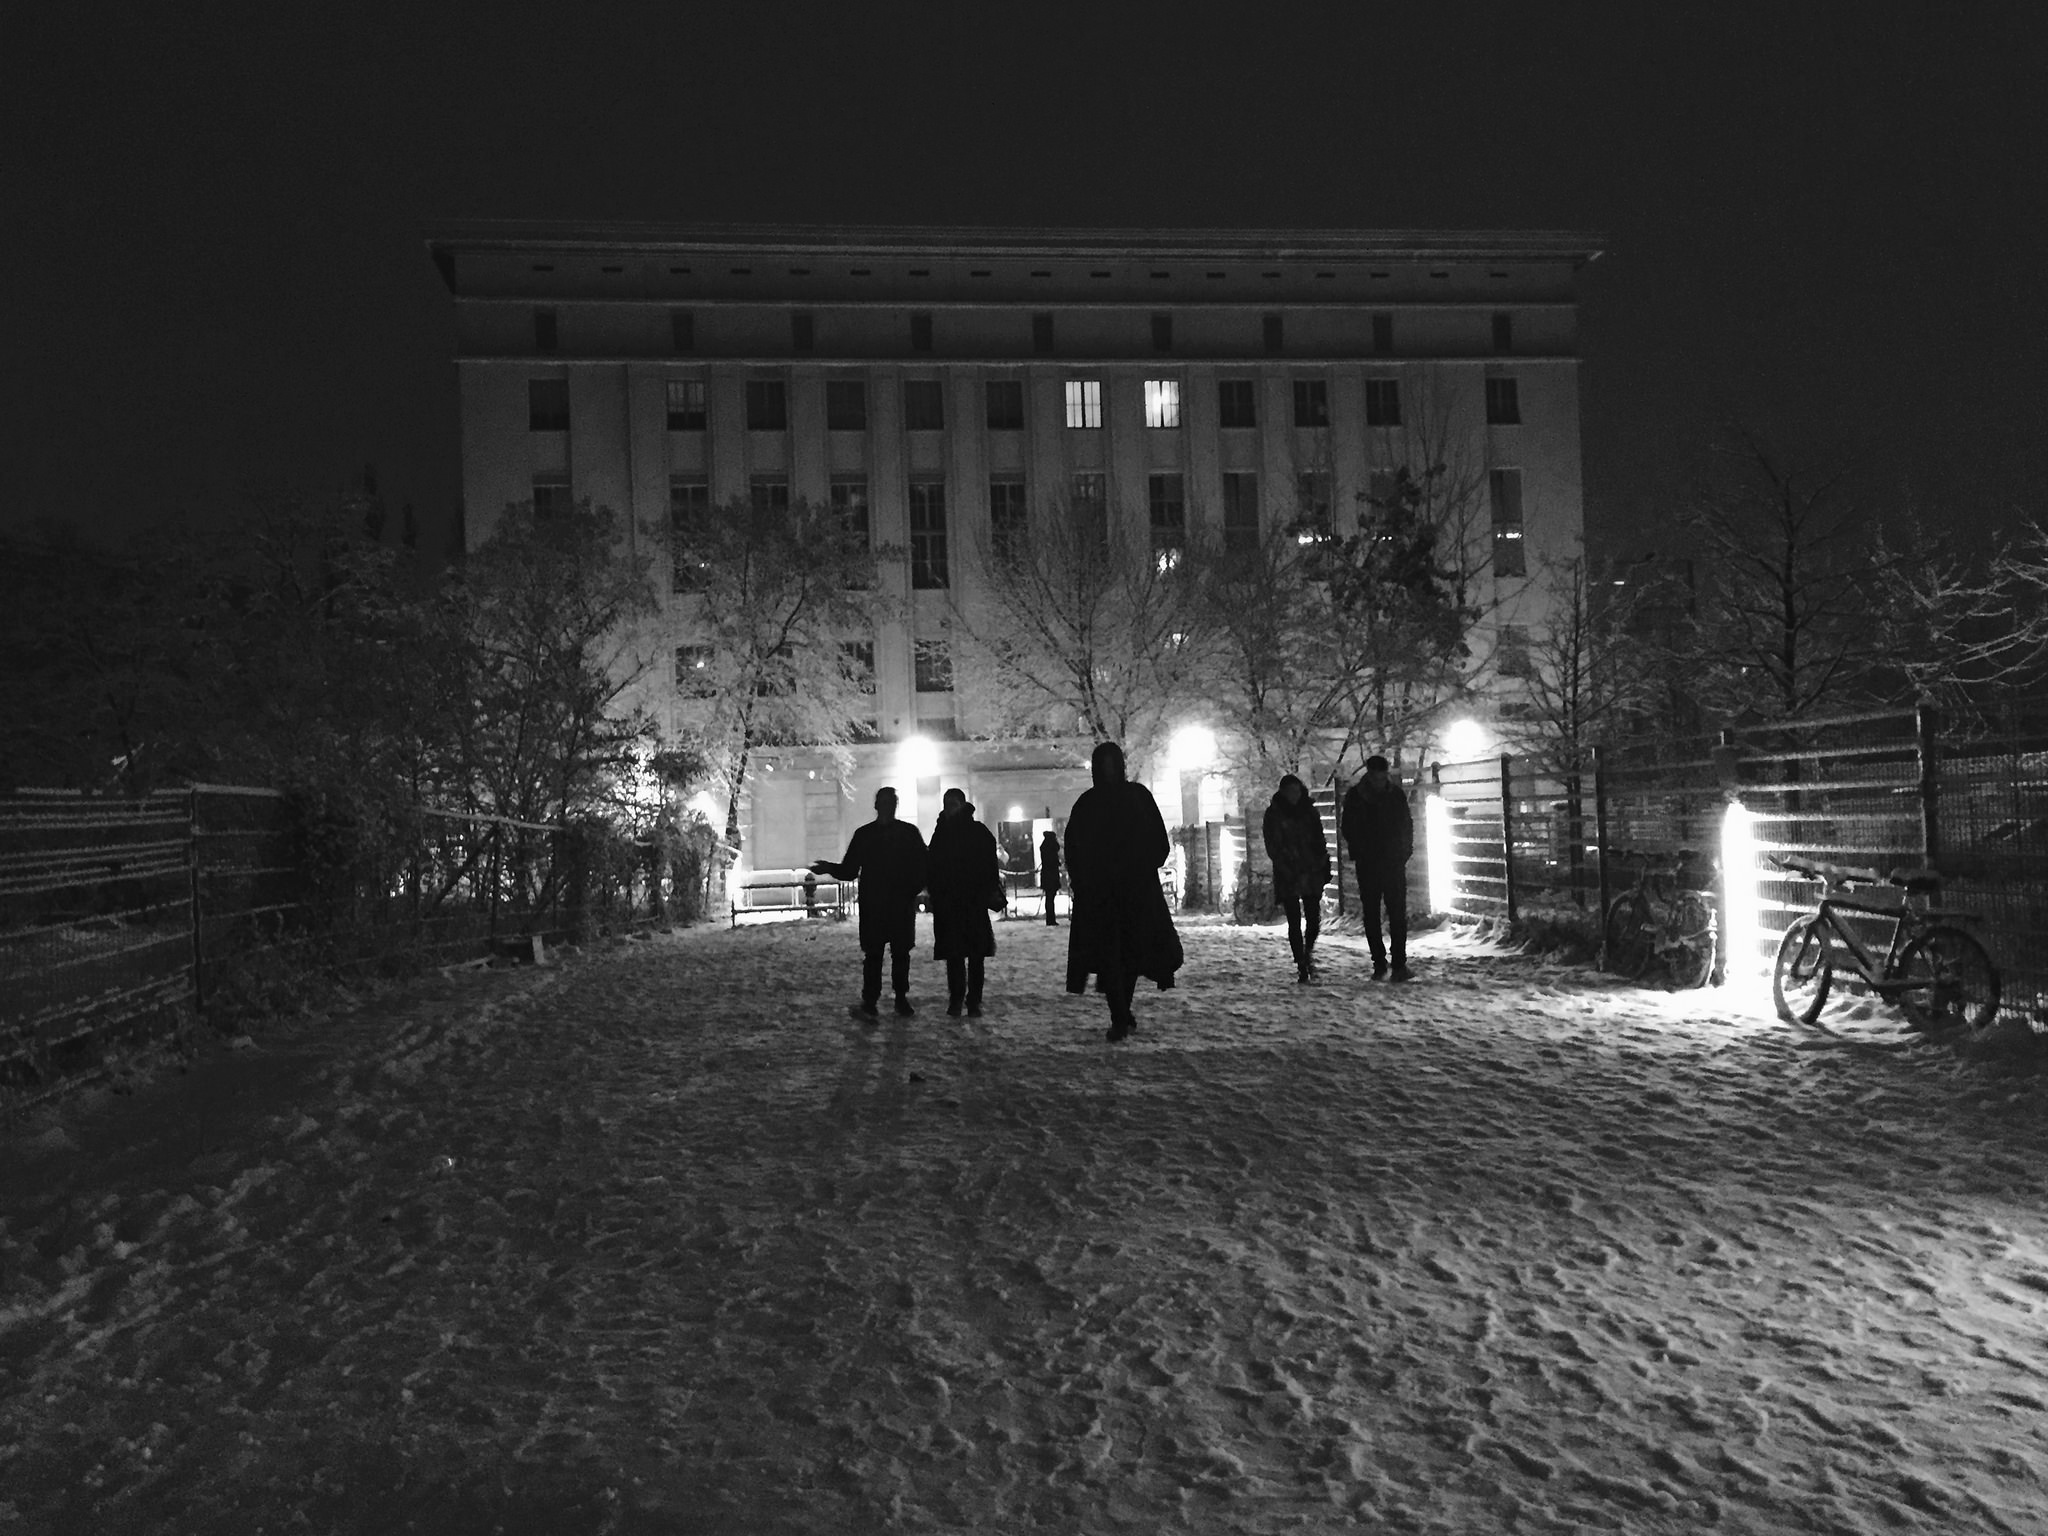 © Michael Mayer, Berghain at Night / Berlin / CC BY 2.0